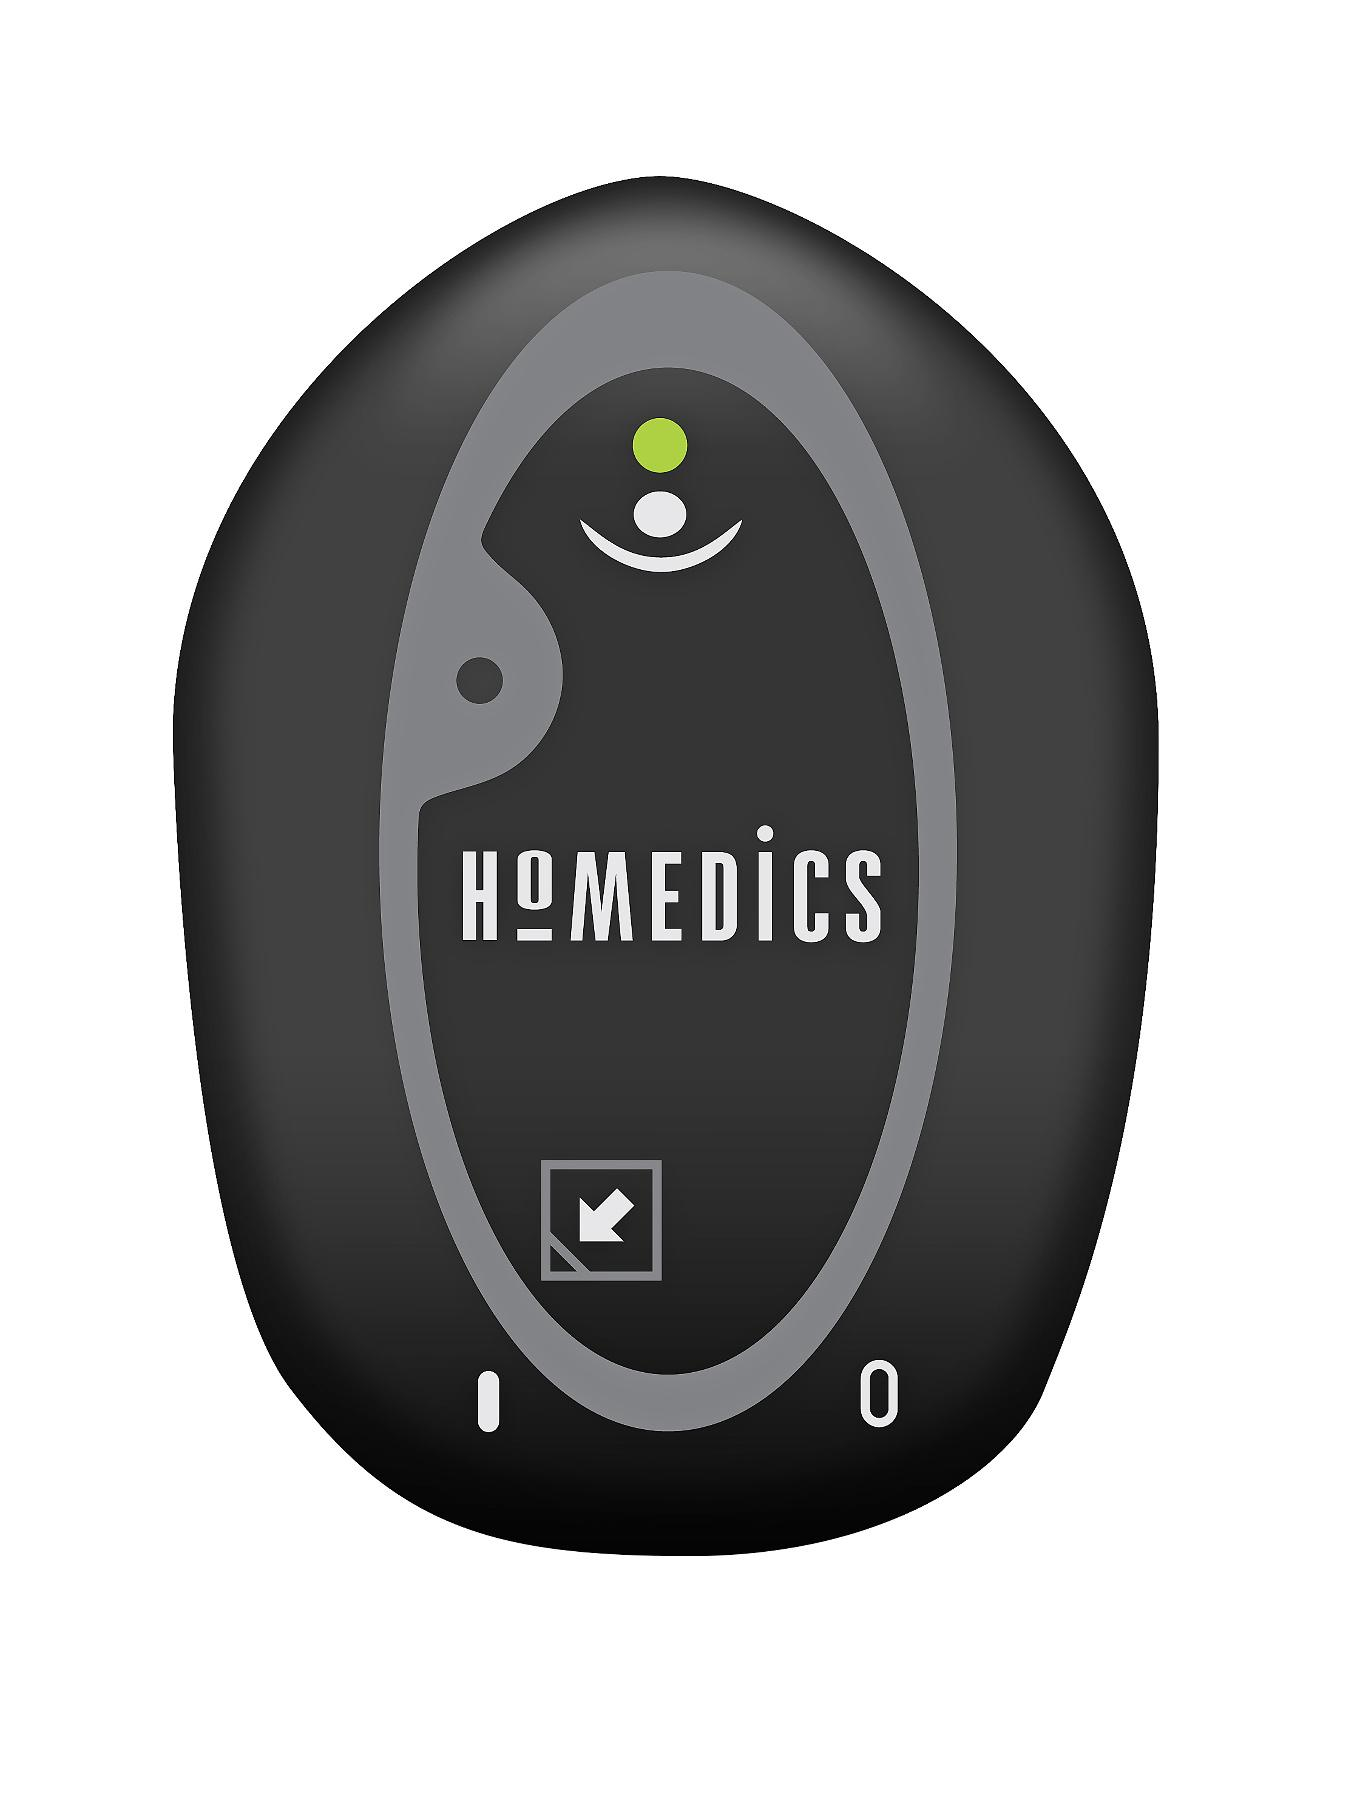 Homedics iHeal PEMF Pain Relief Device